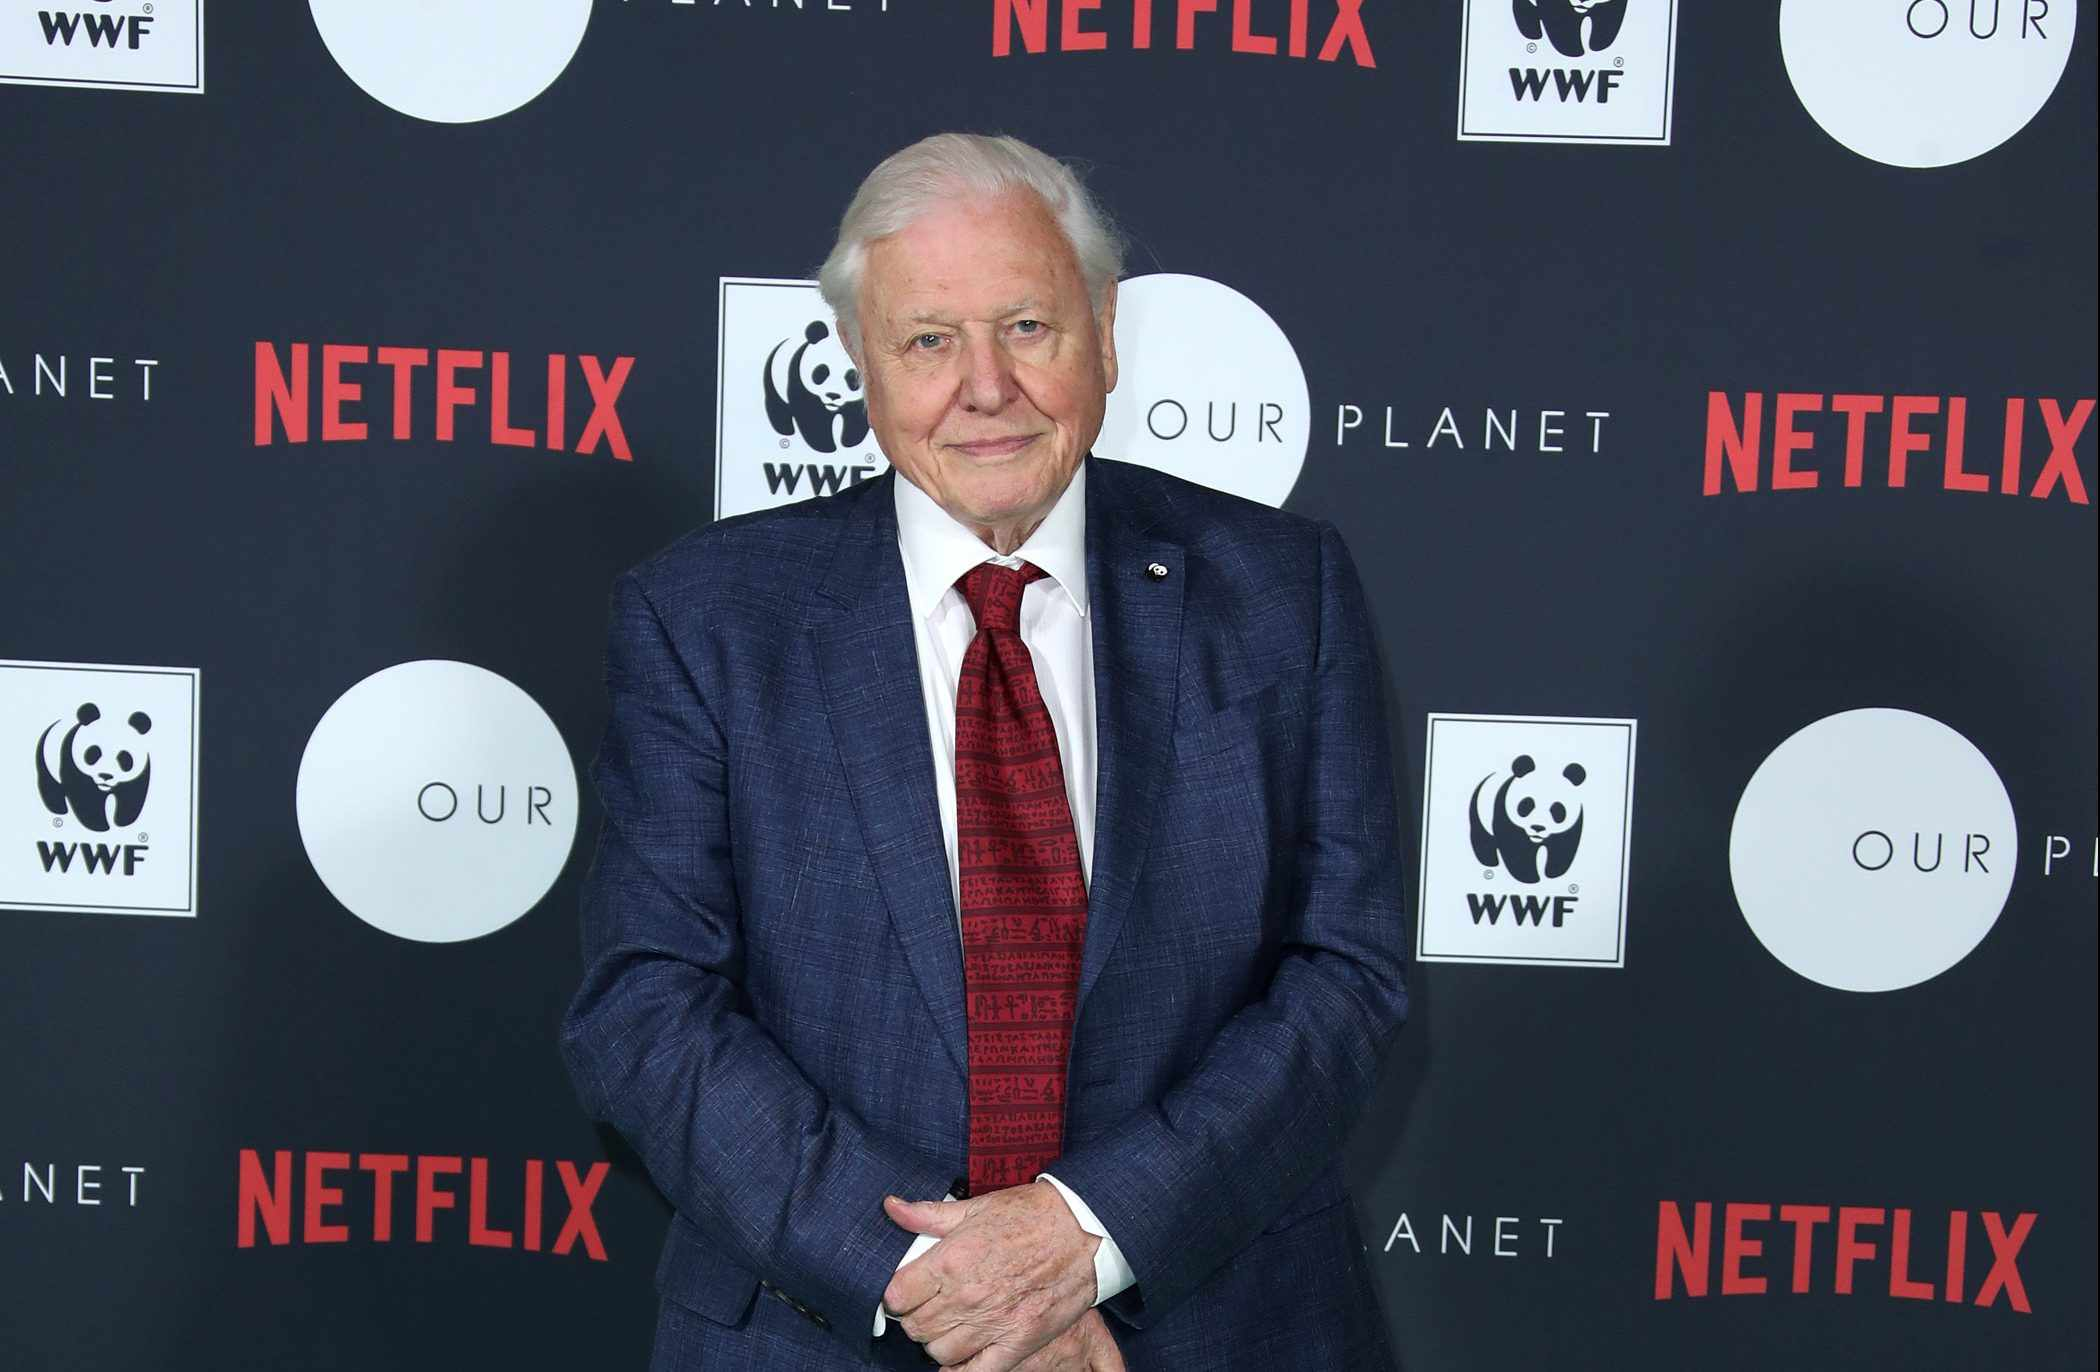 Sir David Attenborough at Netflix's Our Planet announcement at WWF's State of the Planet address at Westminster Hall. © Mike Marsland/Getty